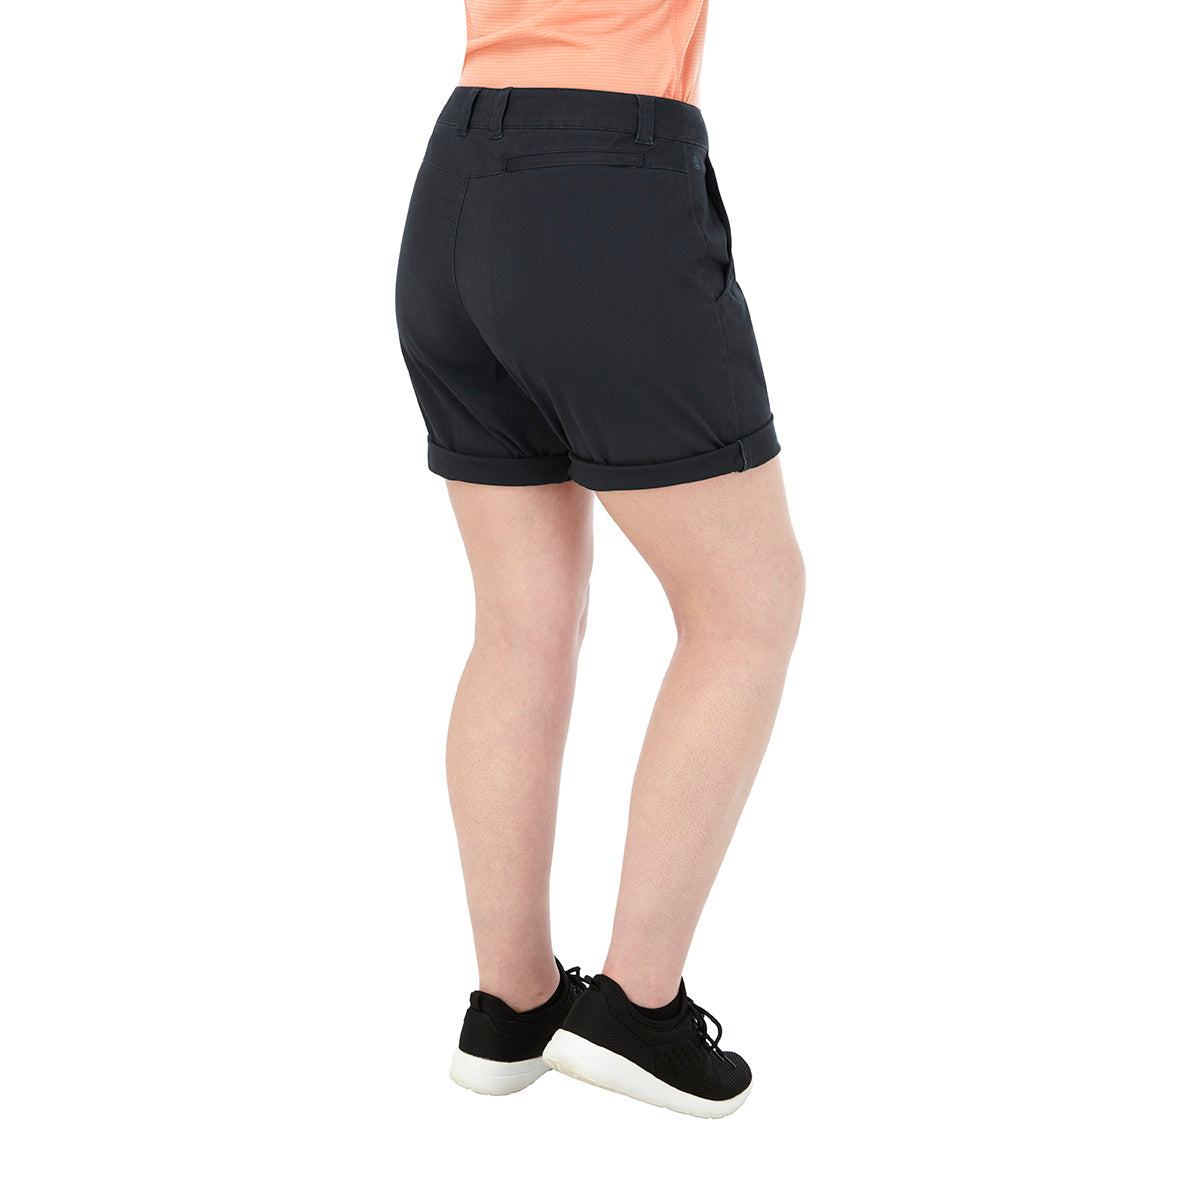 Runswick Womens Performance Shorts - Dark Navy image 4